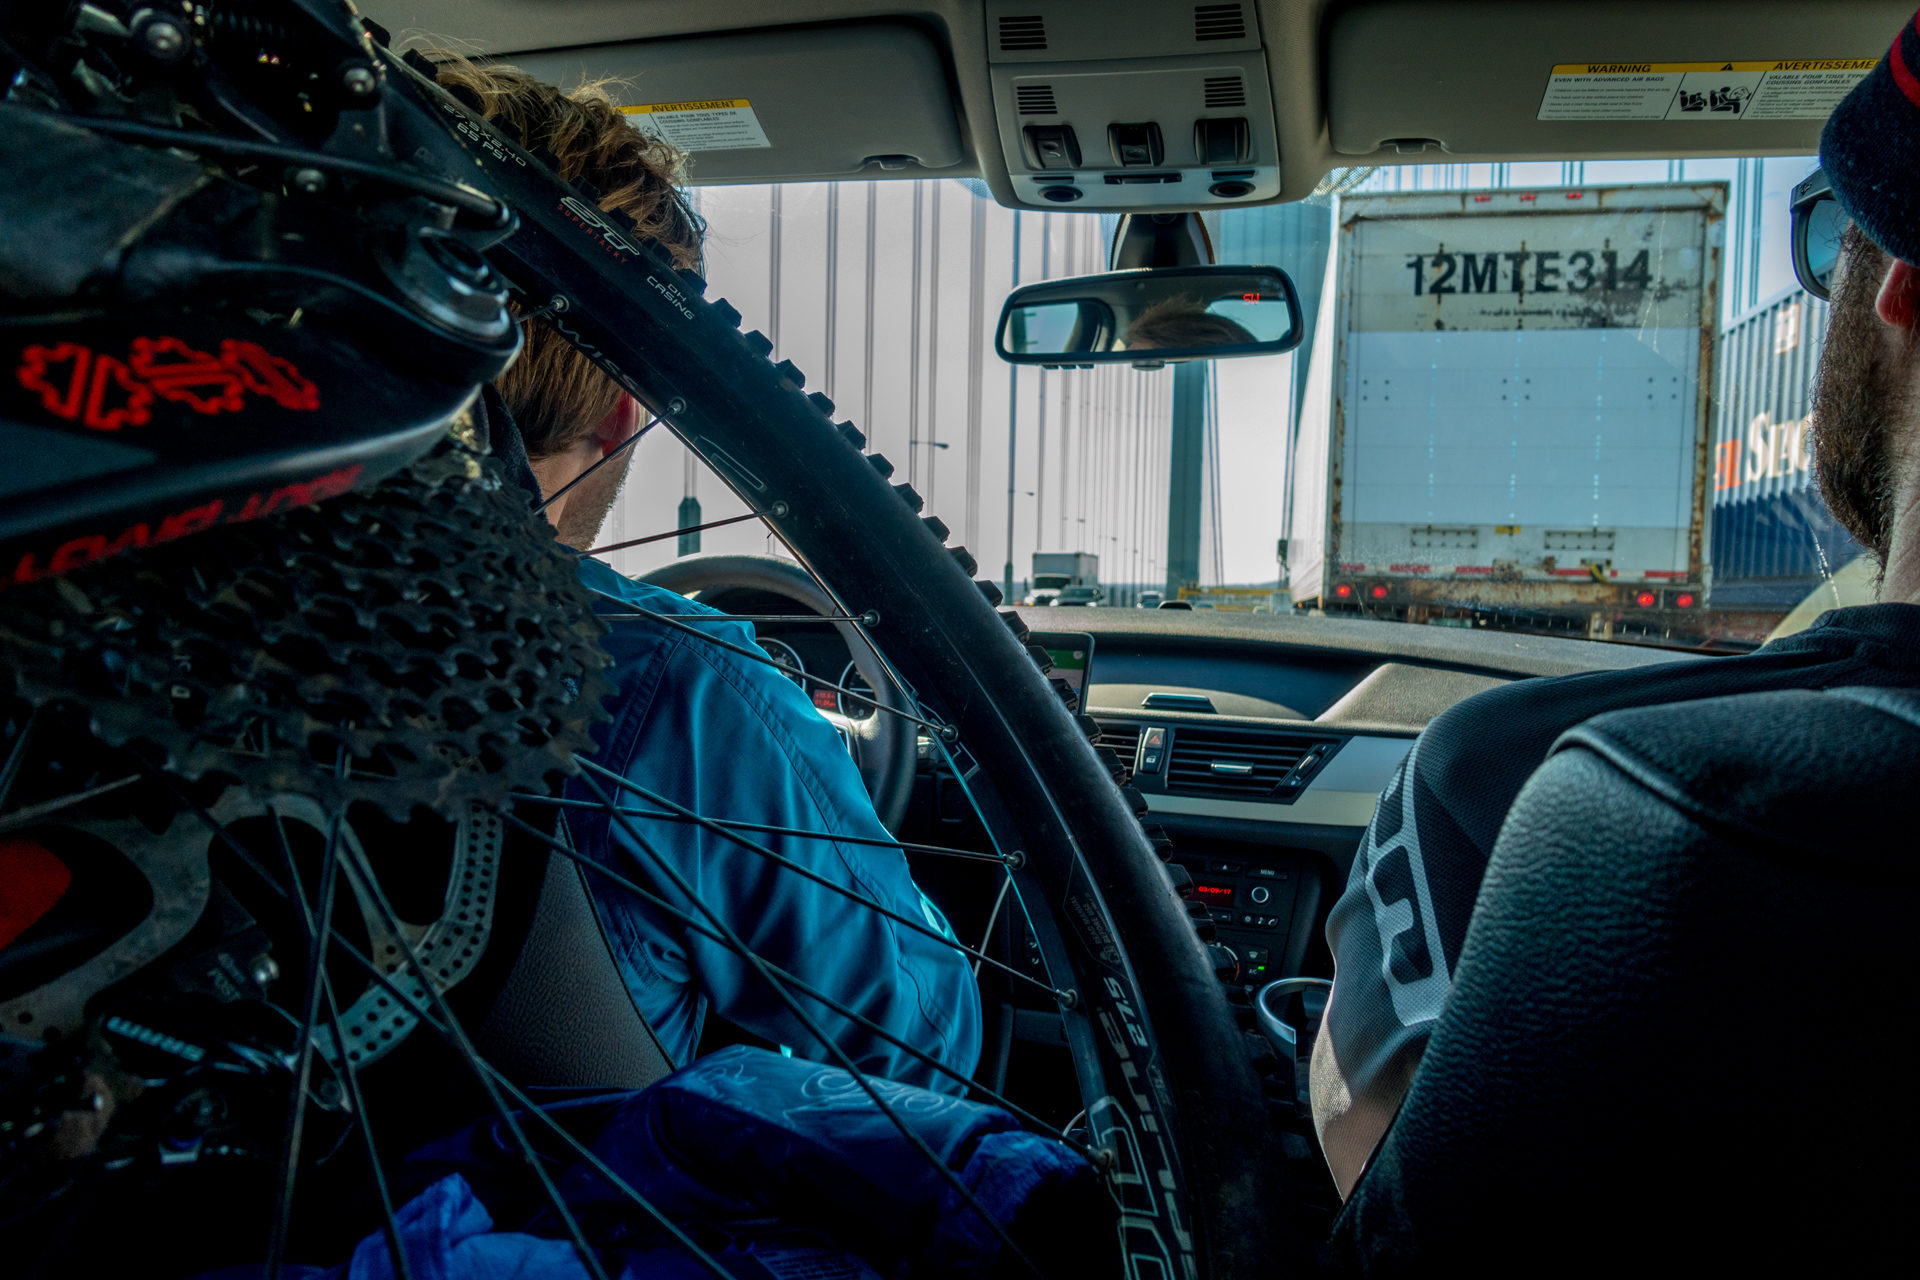 A recipe for mountain biking: Fill a car with bikes and people!